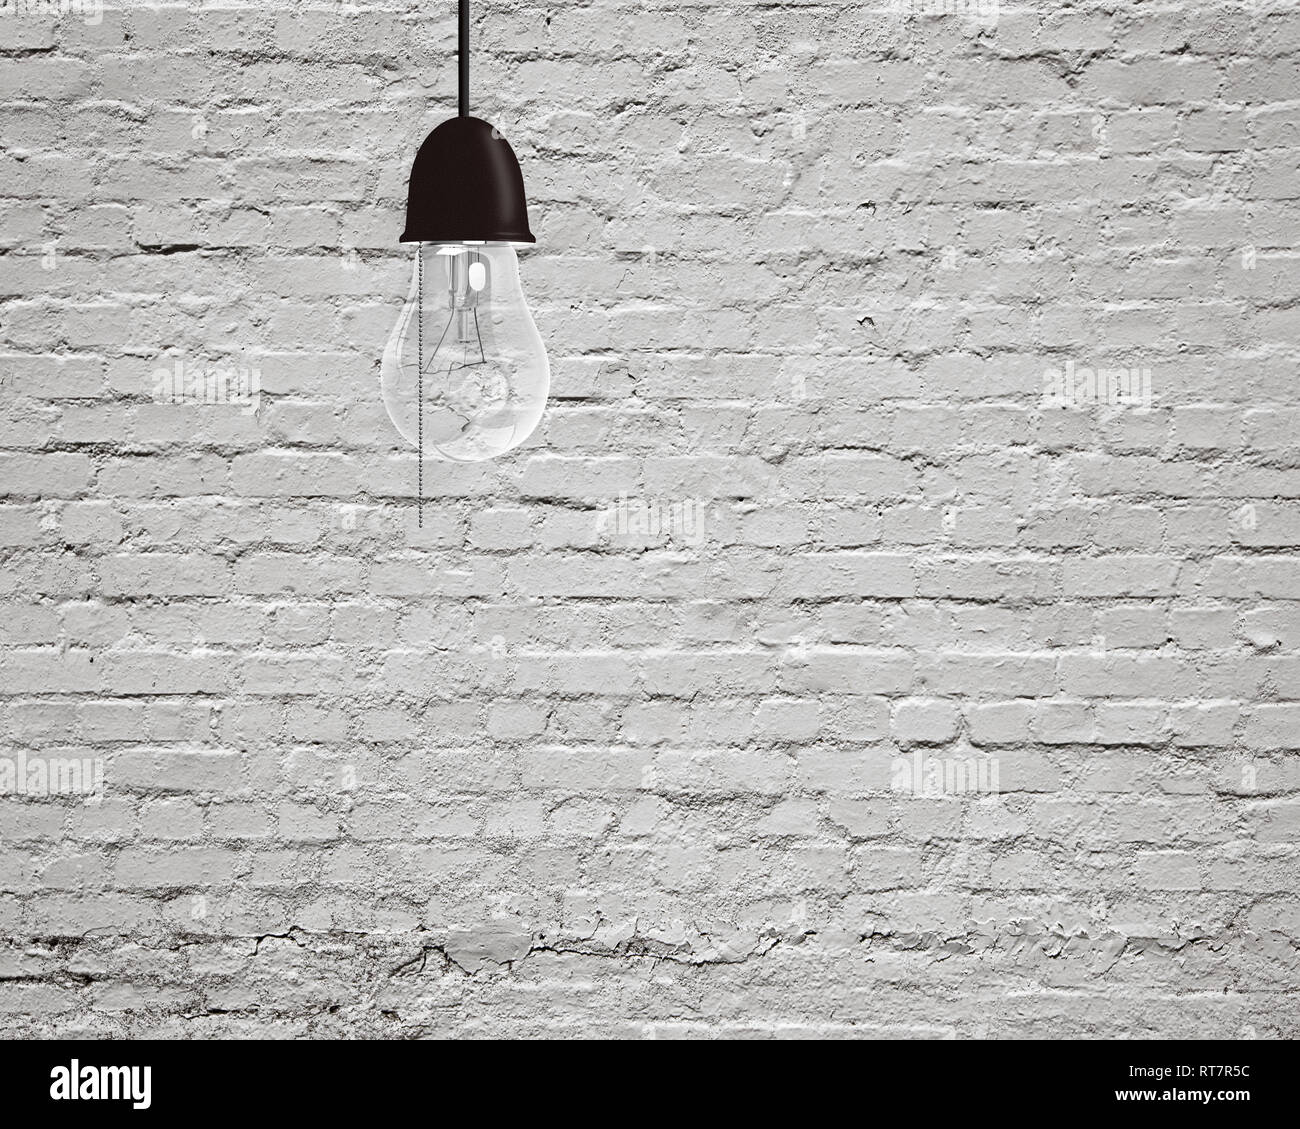 Hanging Light Bulb With Old White Bricks Wall Background Stock Photo Alamy